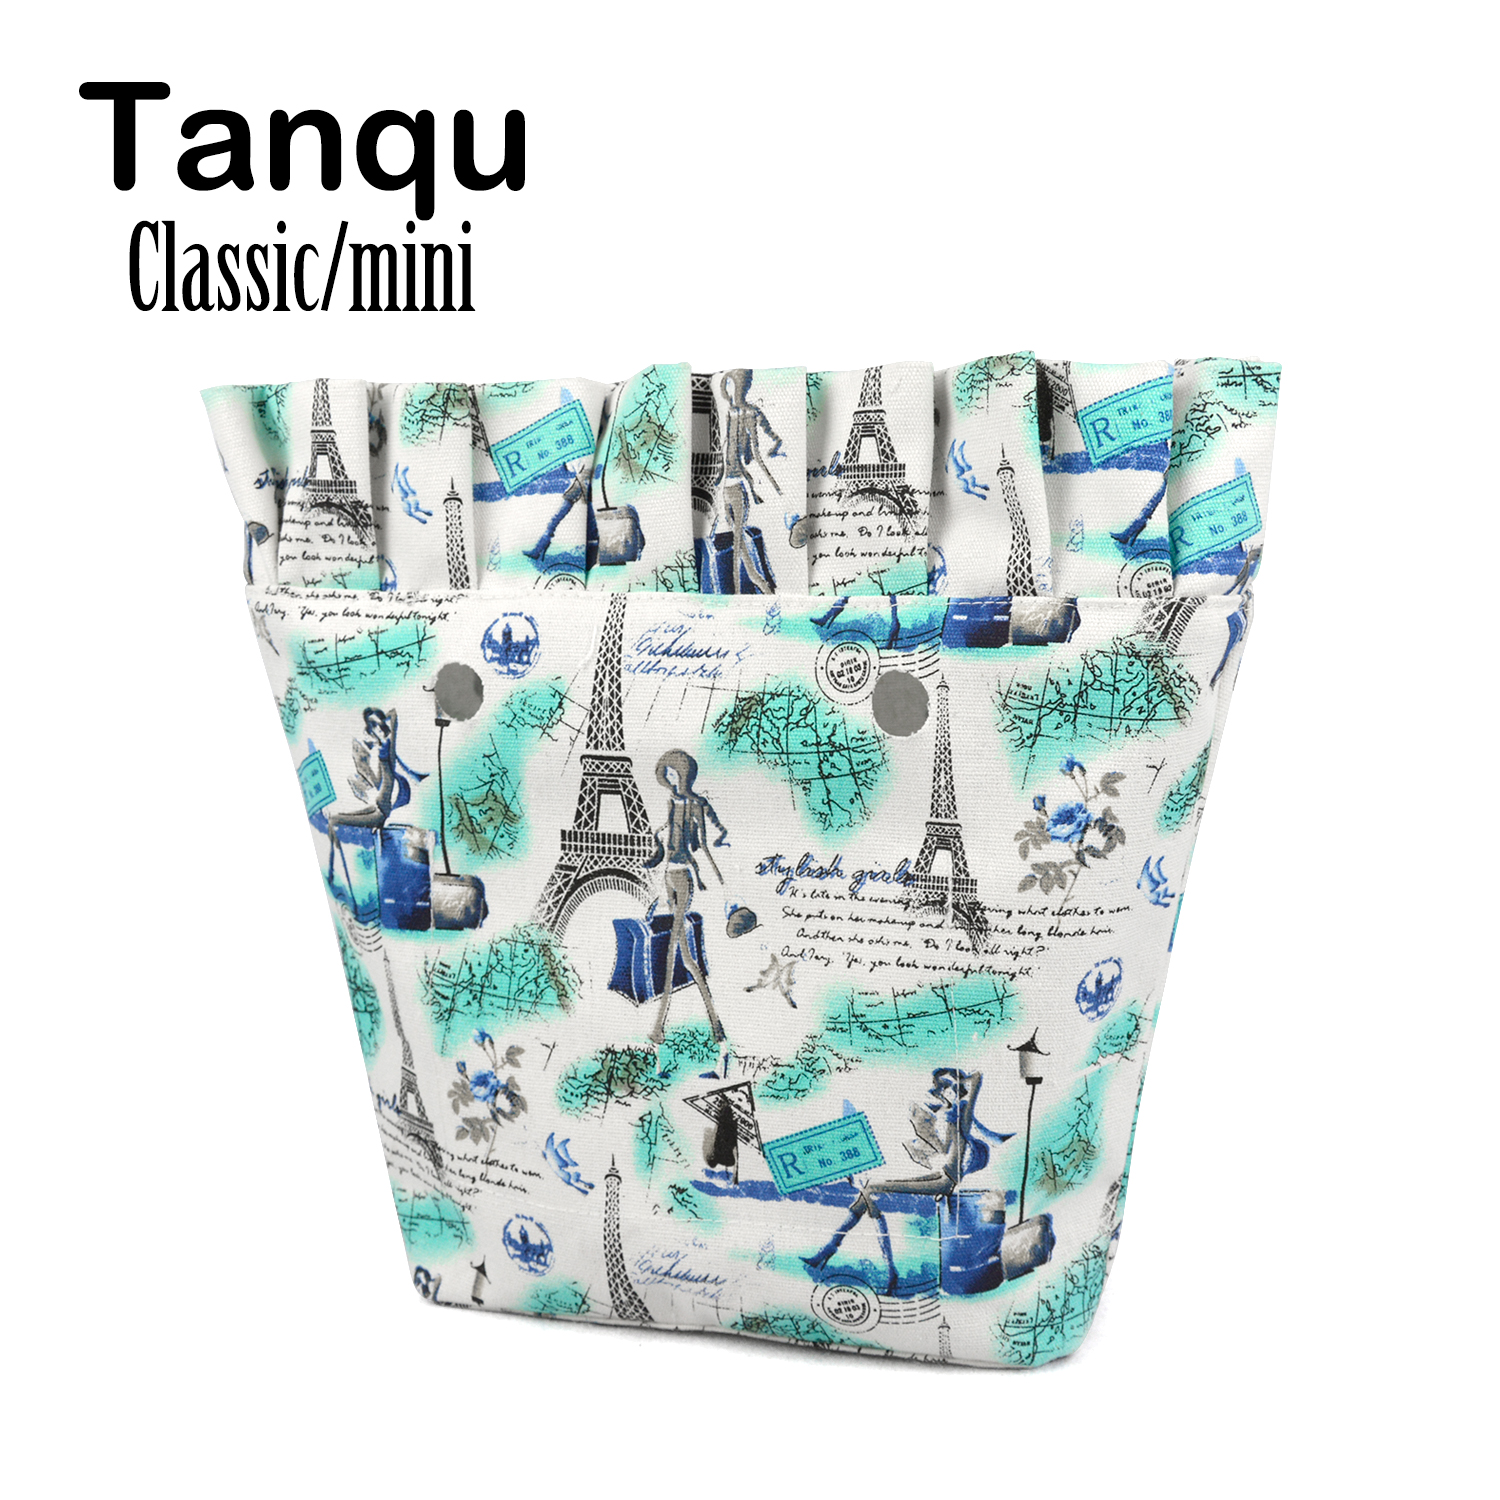 TANQU New Frill Pleat Ruffle Classic Mini Colorful Zip-up Inner Lining Insert for Big Mini Obag Canvas Inner Pocket for O Bag триммер carver tr 1500s bh